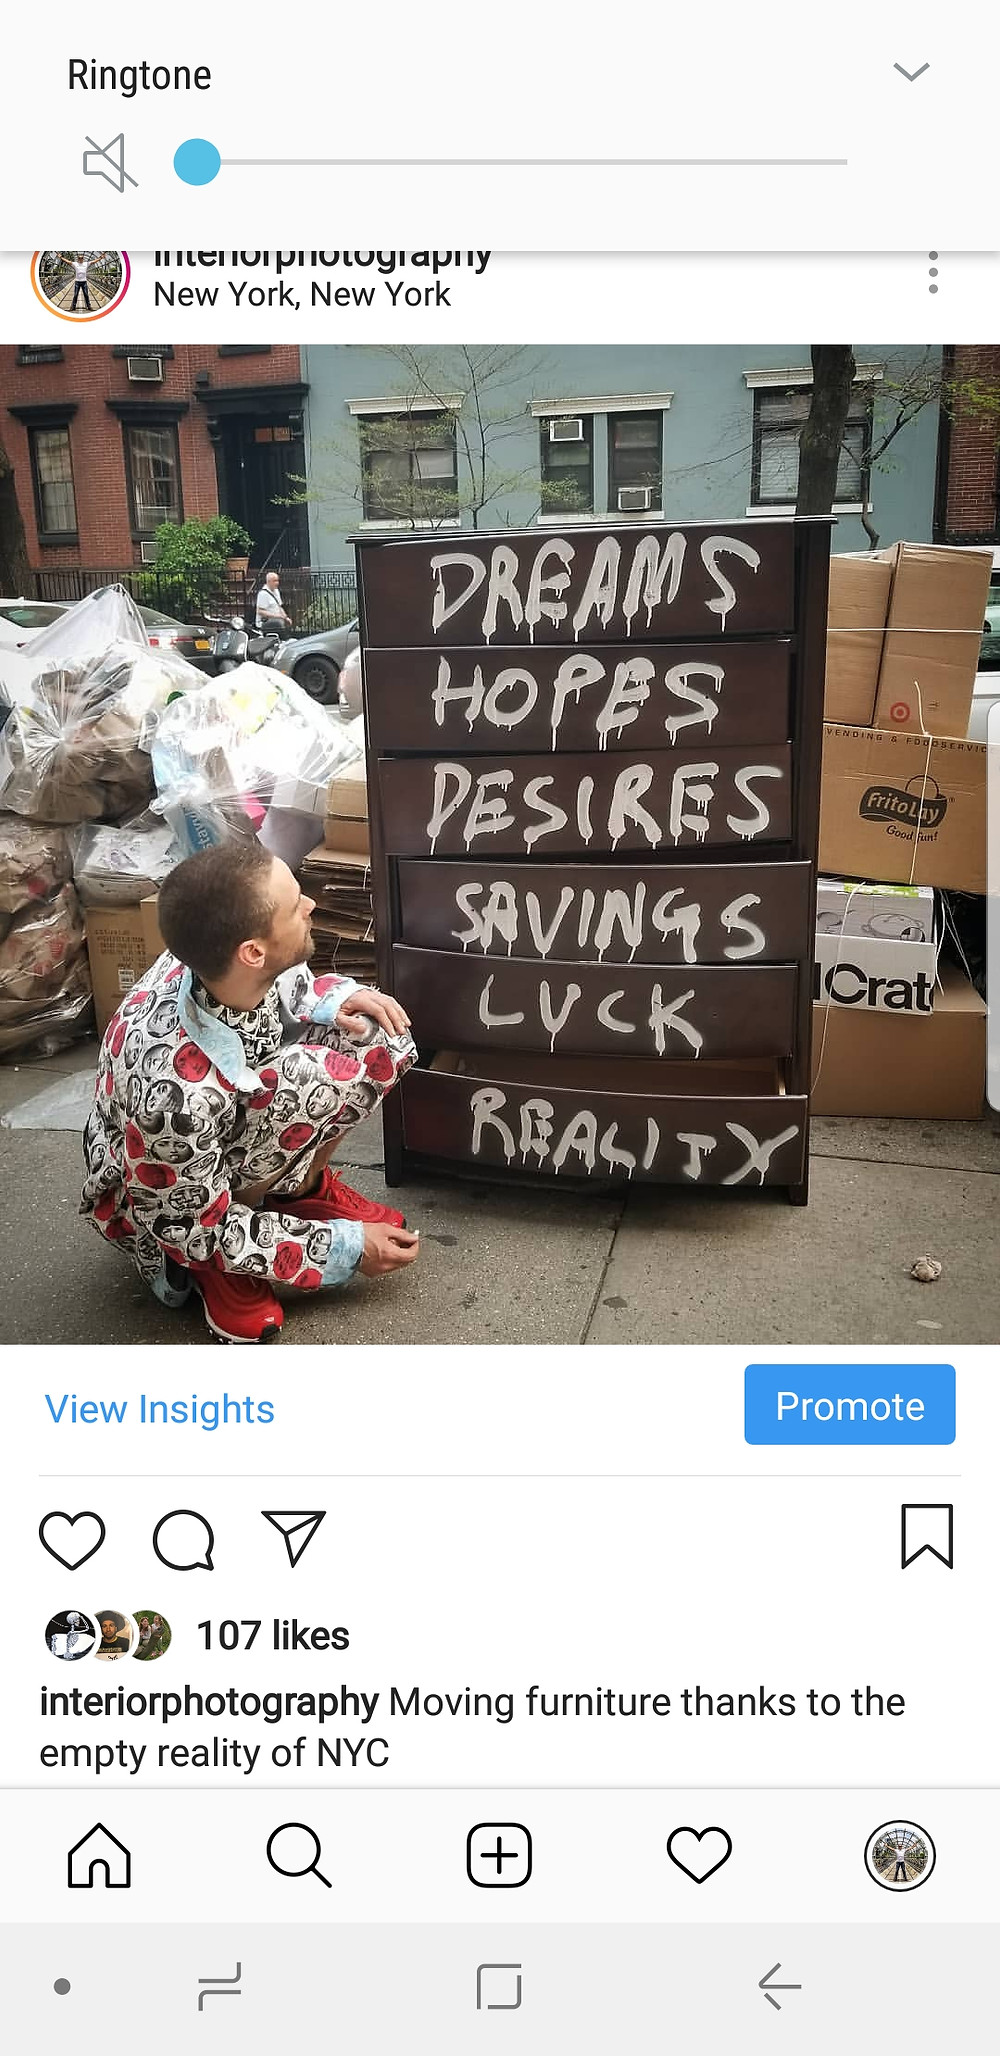 Instagram post- interiorphotography: dreams hopes desires savings luck reality